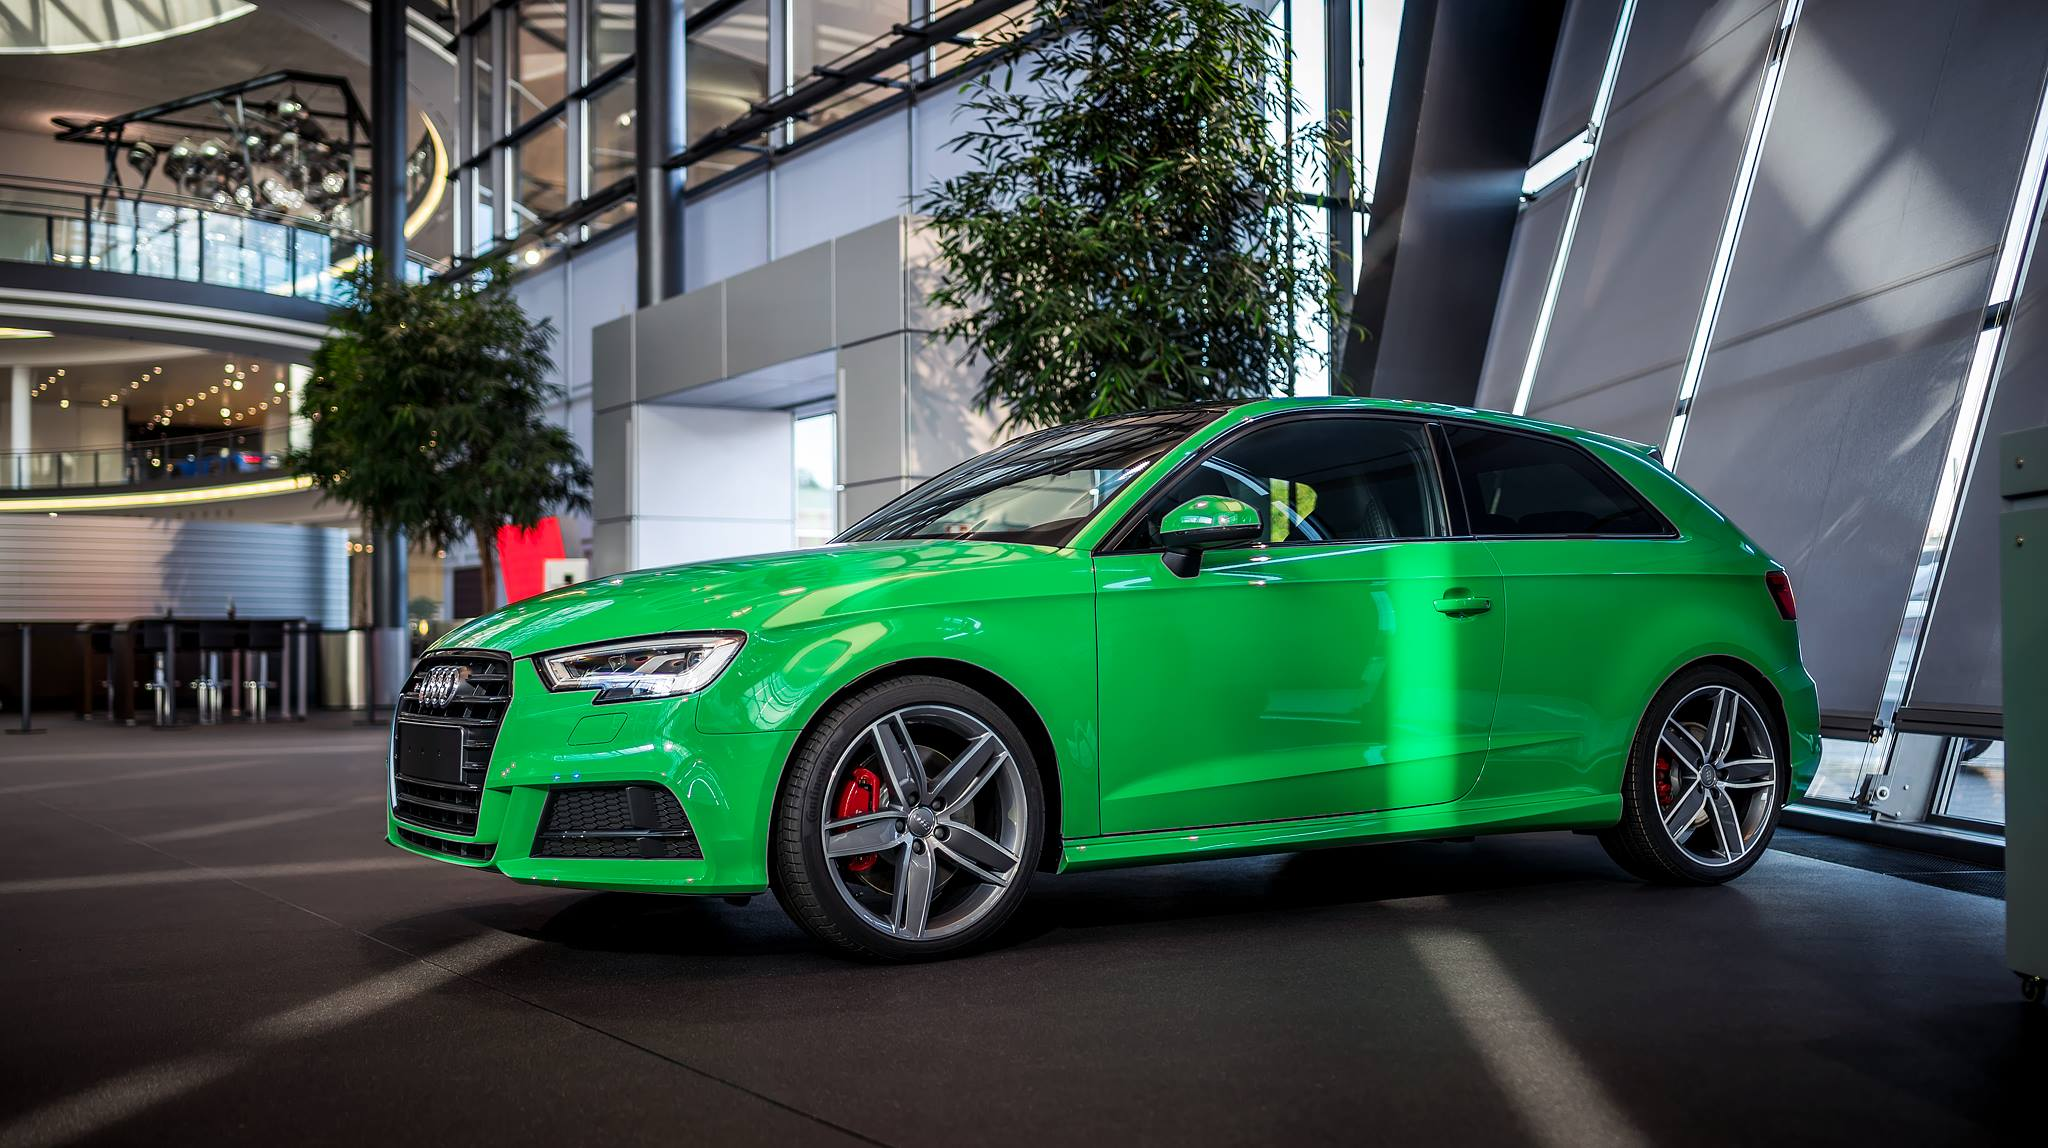 2017 Audi S3 3 Door In Porsche Green Is A Purist S Car